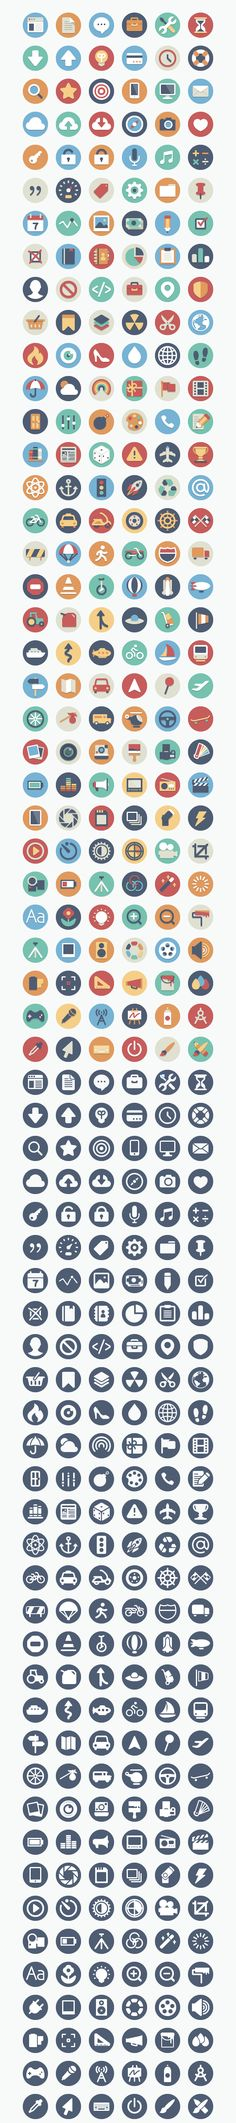 Beautiful flat icons by Elegant Themes // 192 piece set -- all yours, for free…